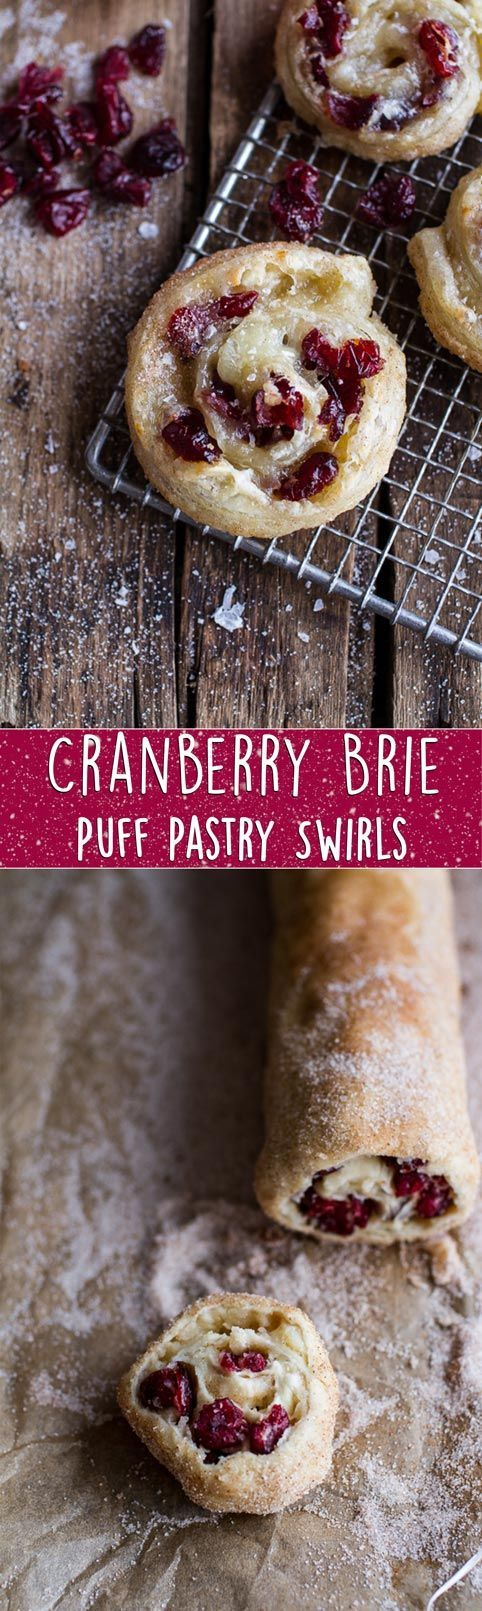 Five-Ingredient Cranberry and Brie Cinnamon Sugar Puff Pastry Swirls | halfbakedharvest.com @Half Baked Harvest